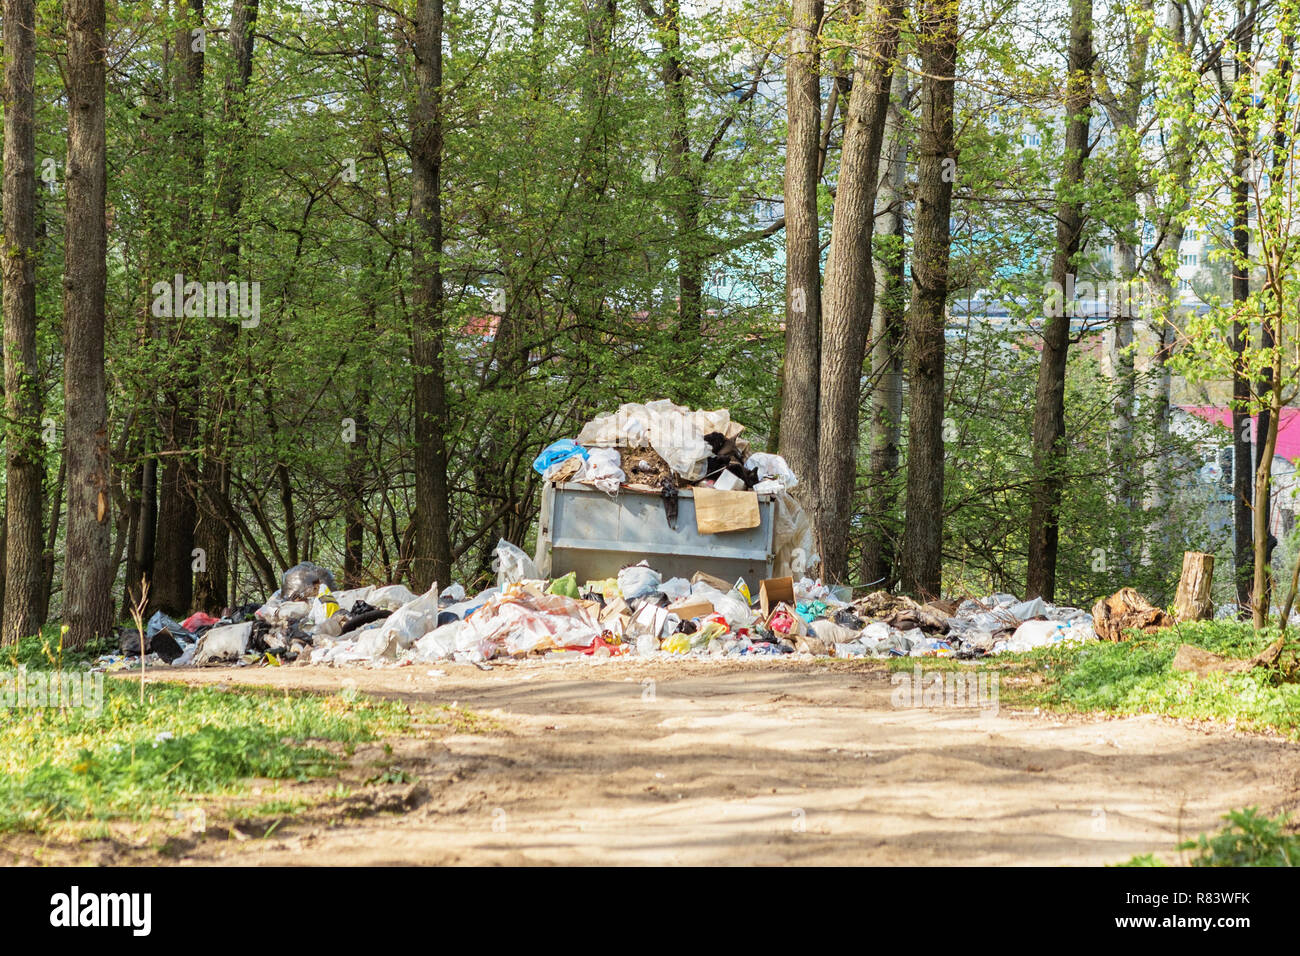 Garbage dump in the forest. Pollution of nature. - Stock Image